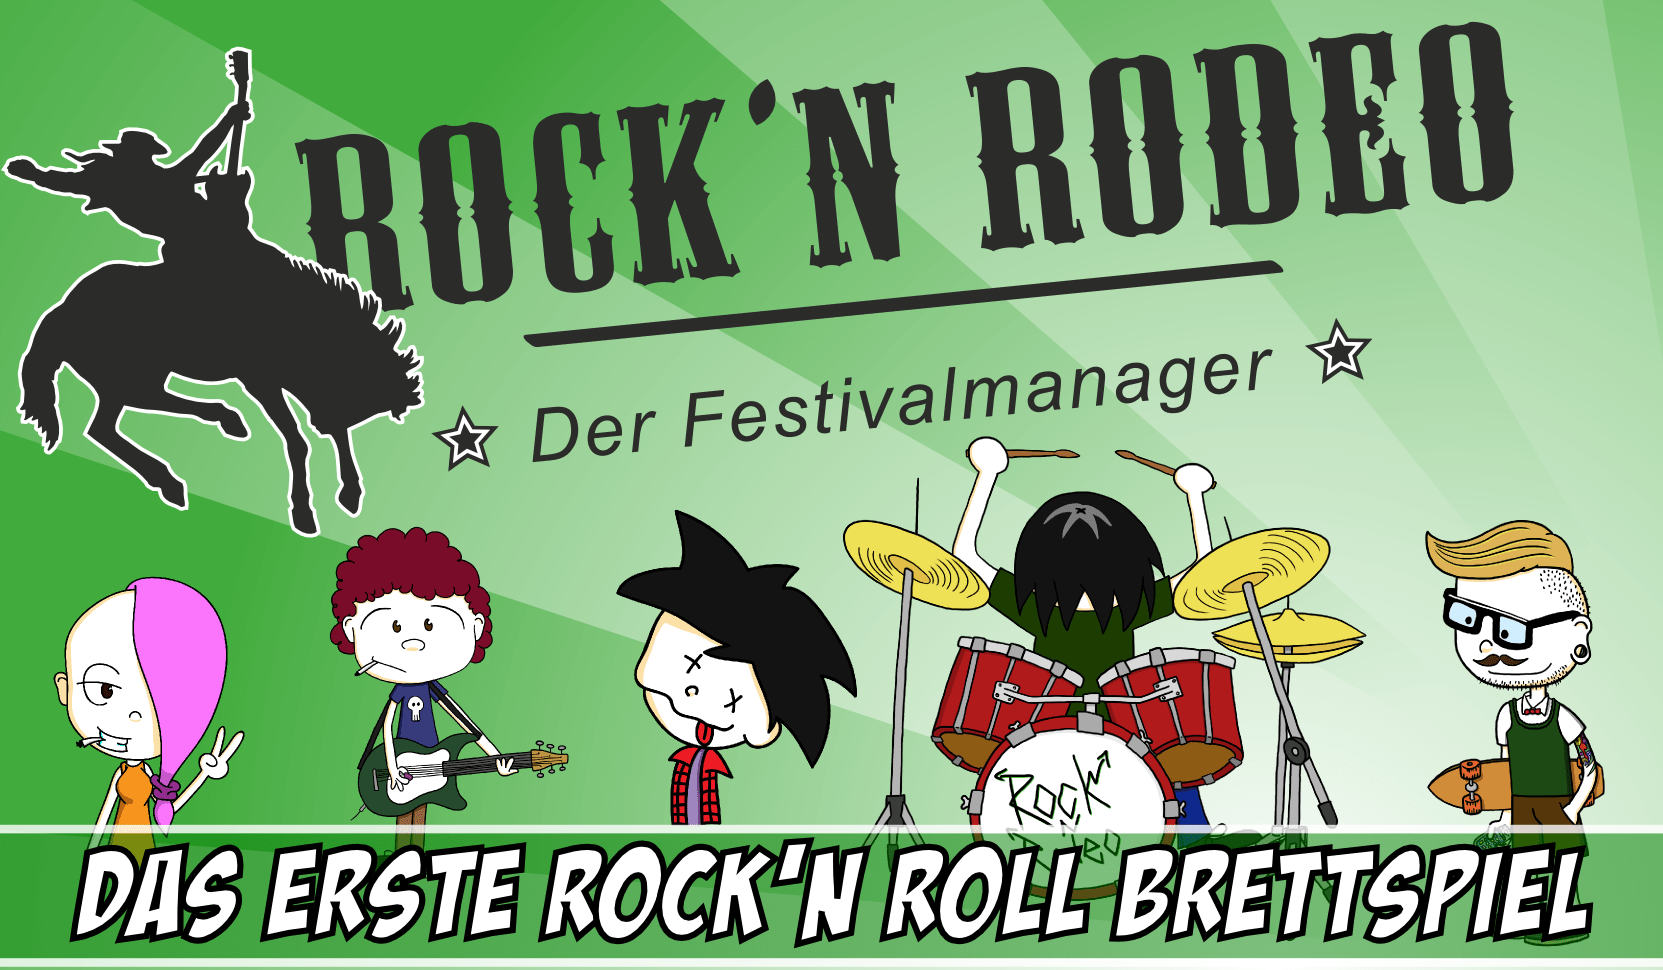 Brettspiel Rock'n Rodeo Crowdfunding auf Startnext